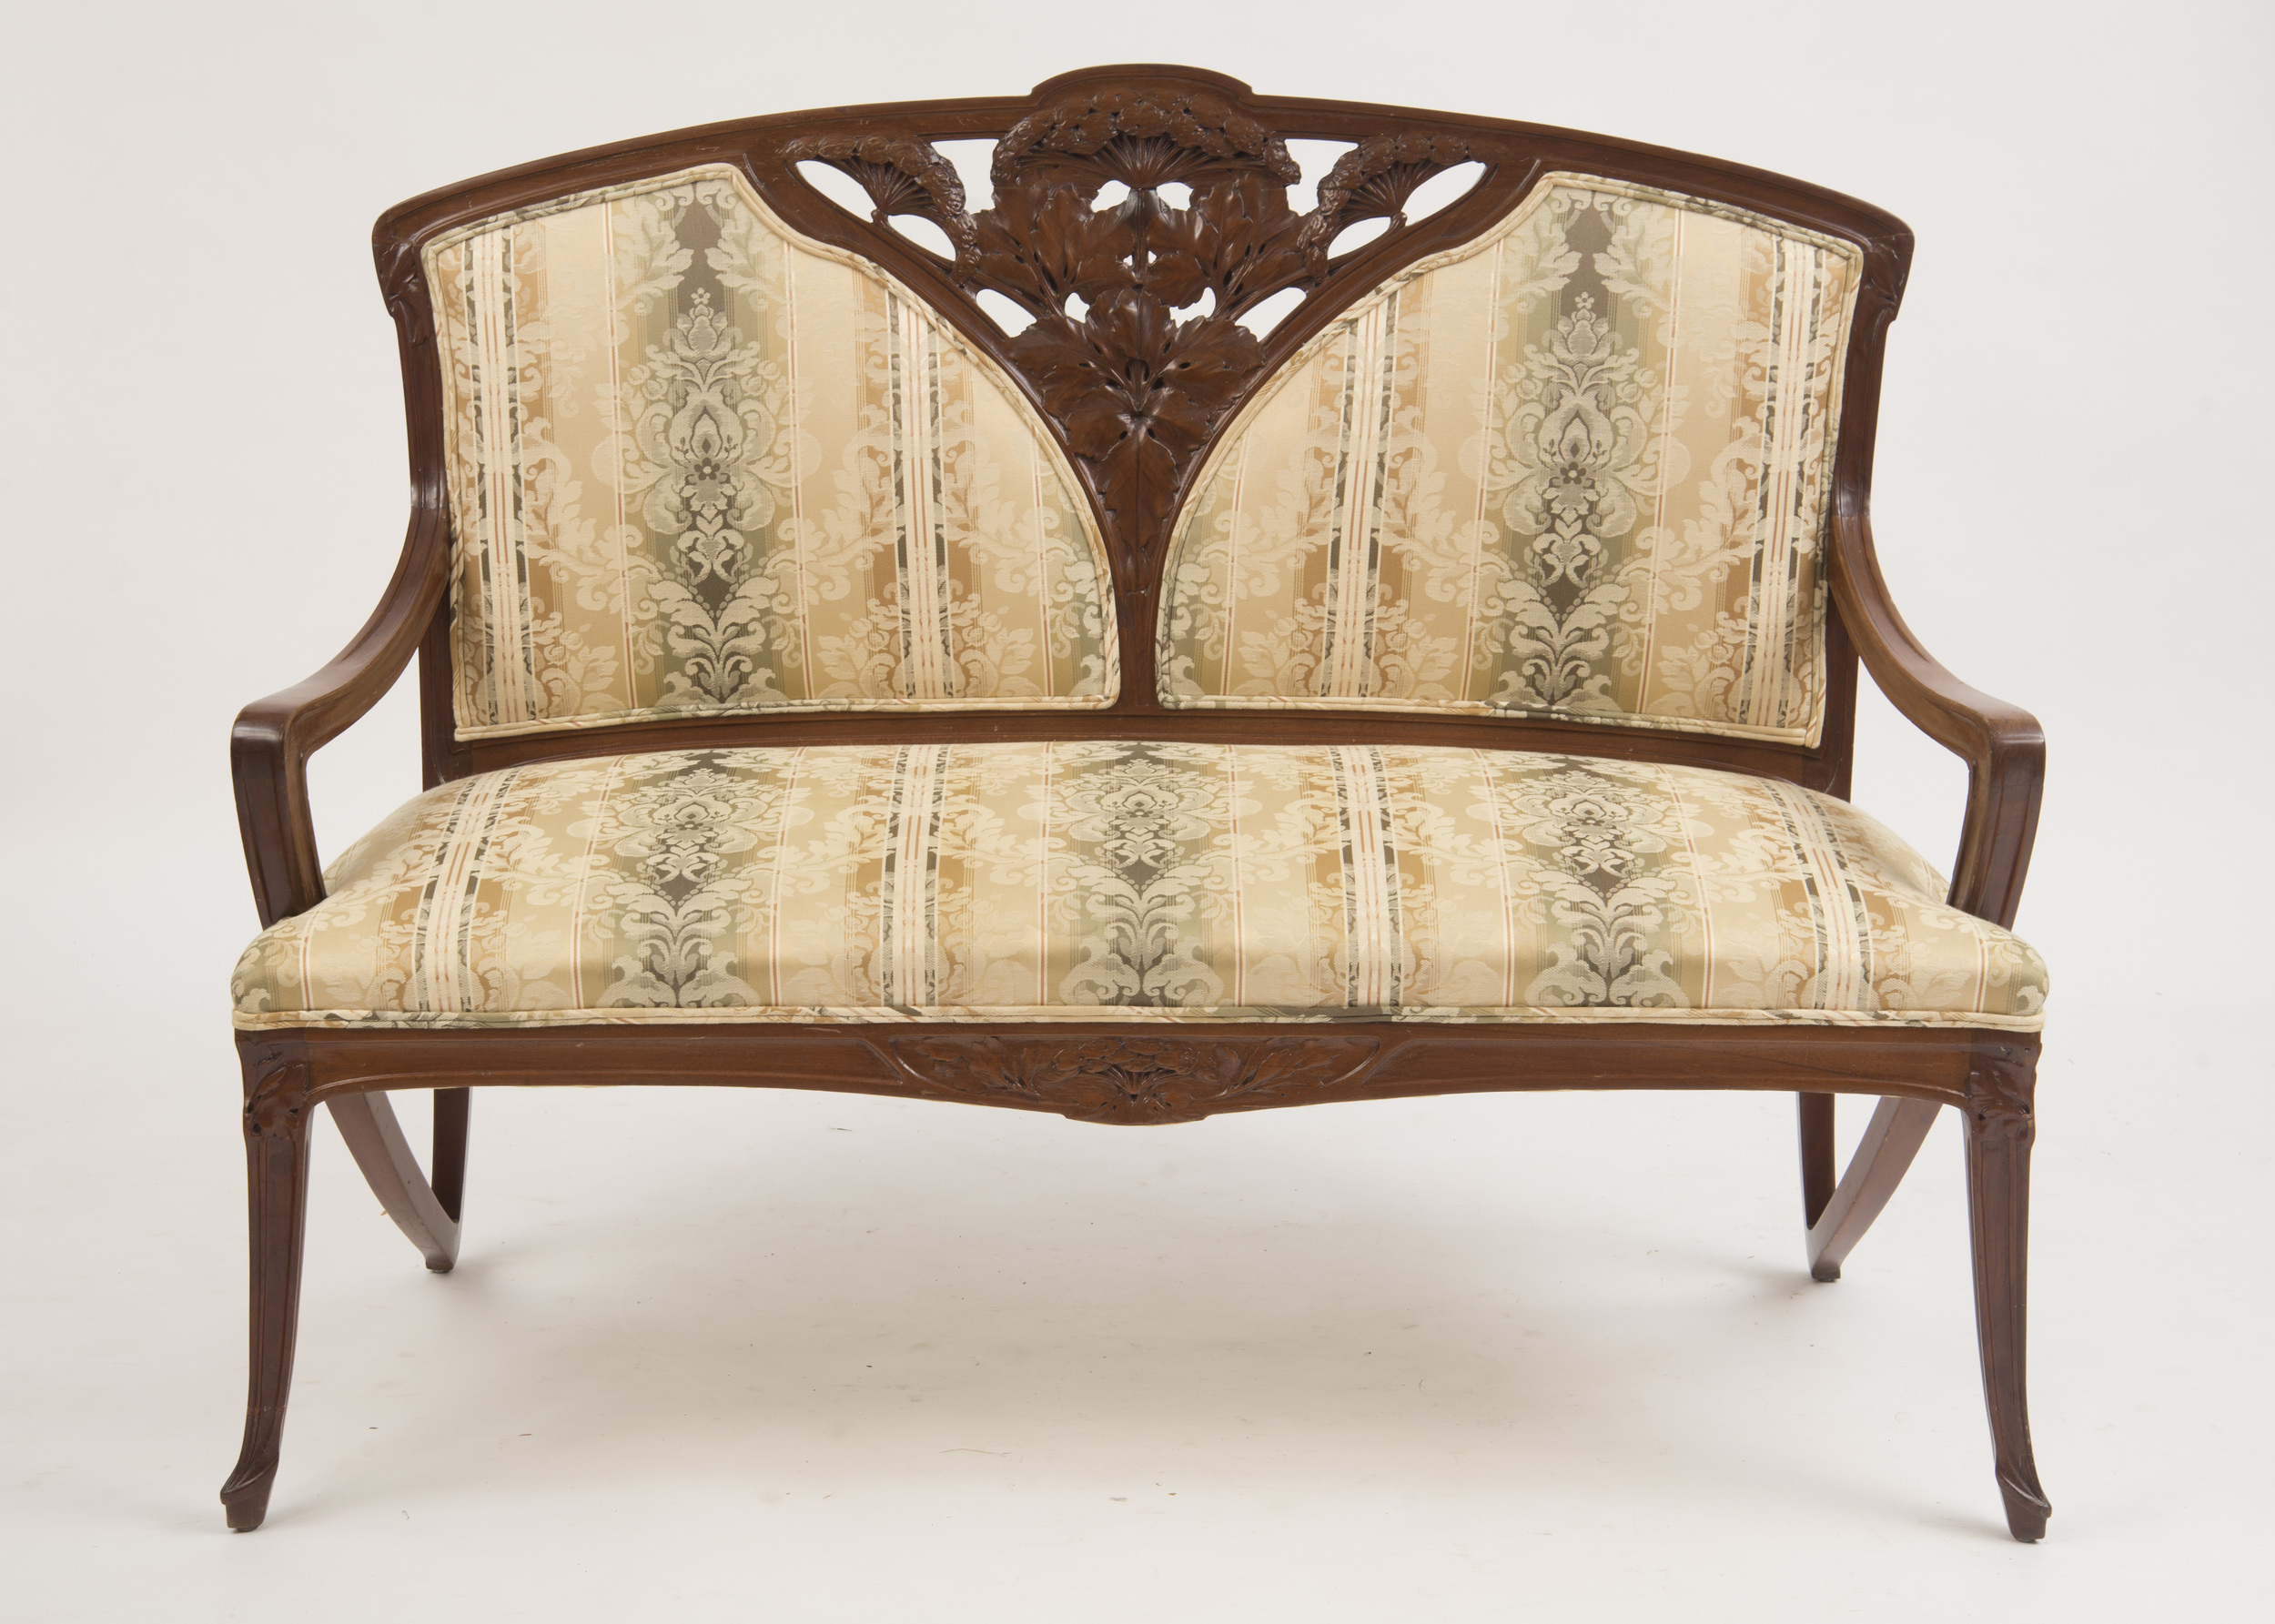 ART NOUVEAU CARVED MAHOGANY SETTEE, IN THE STYLE OF LOUIS MAJORELLE